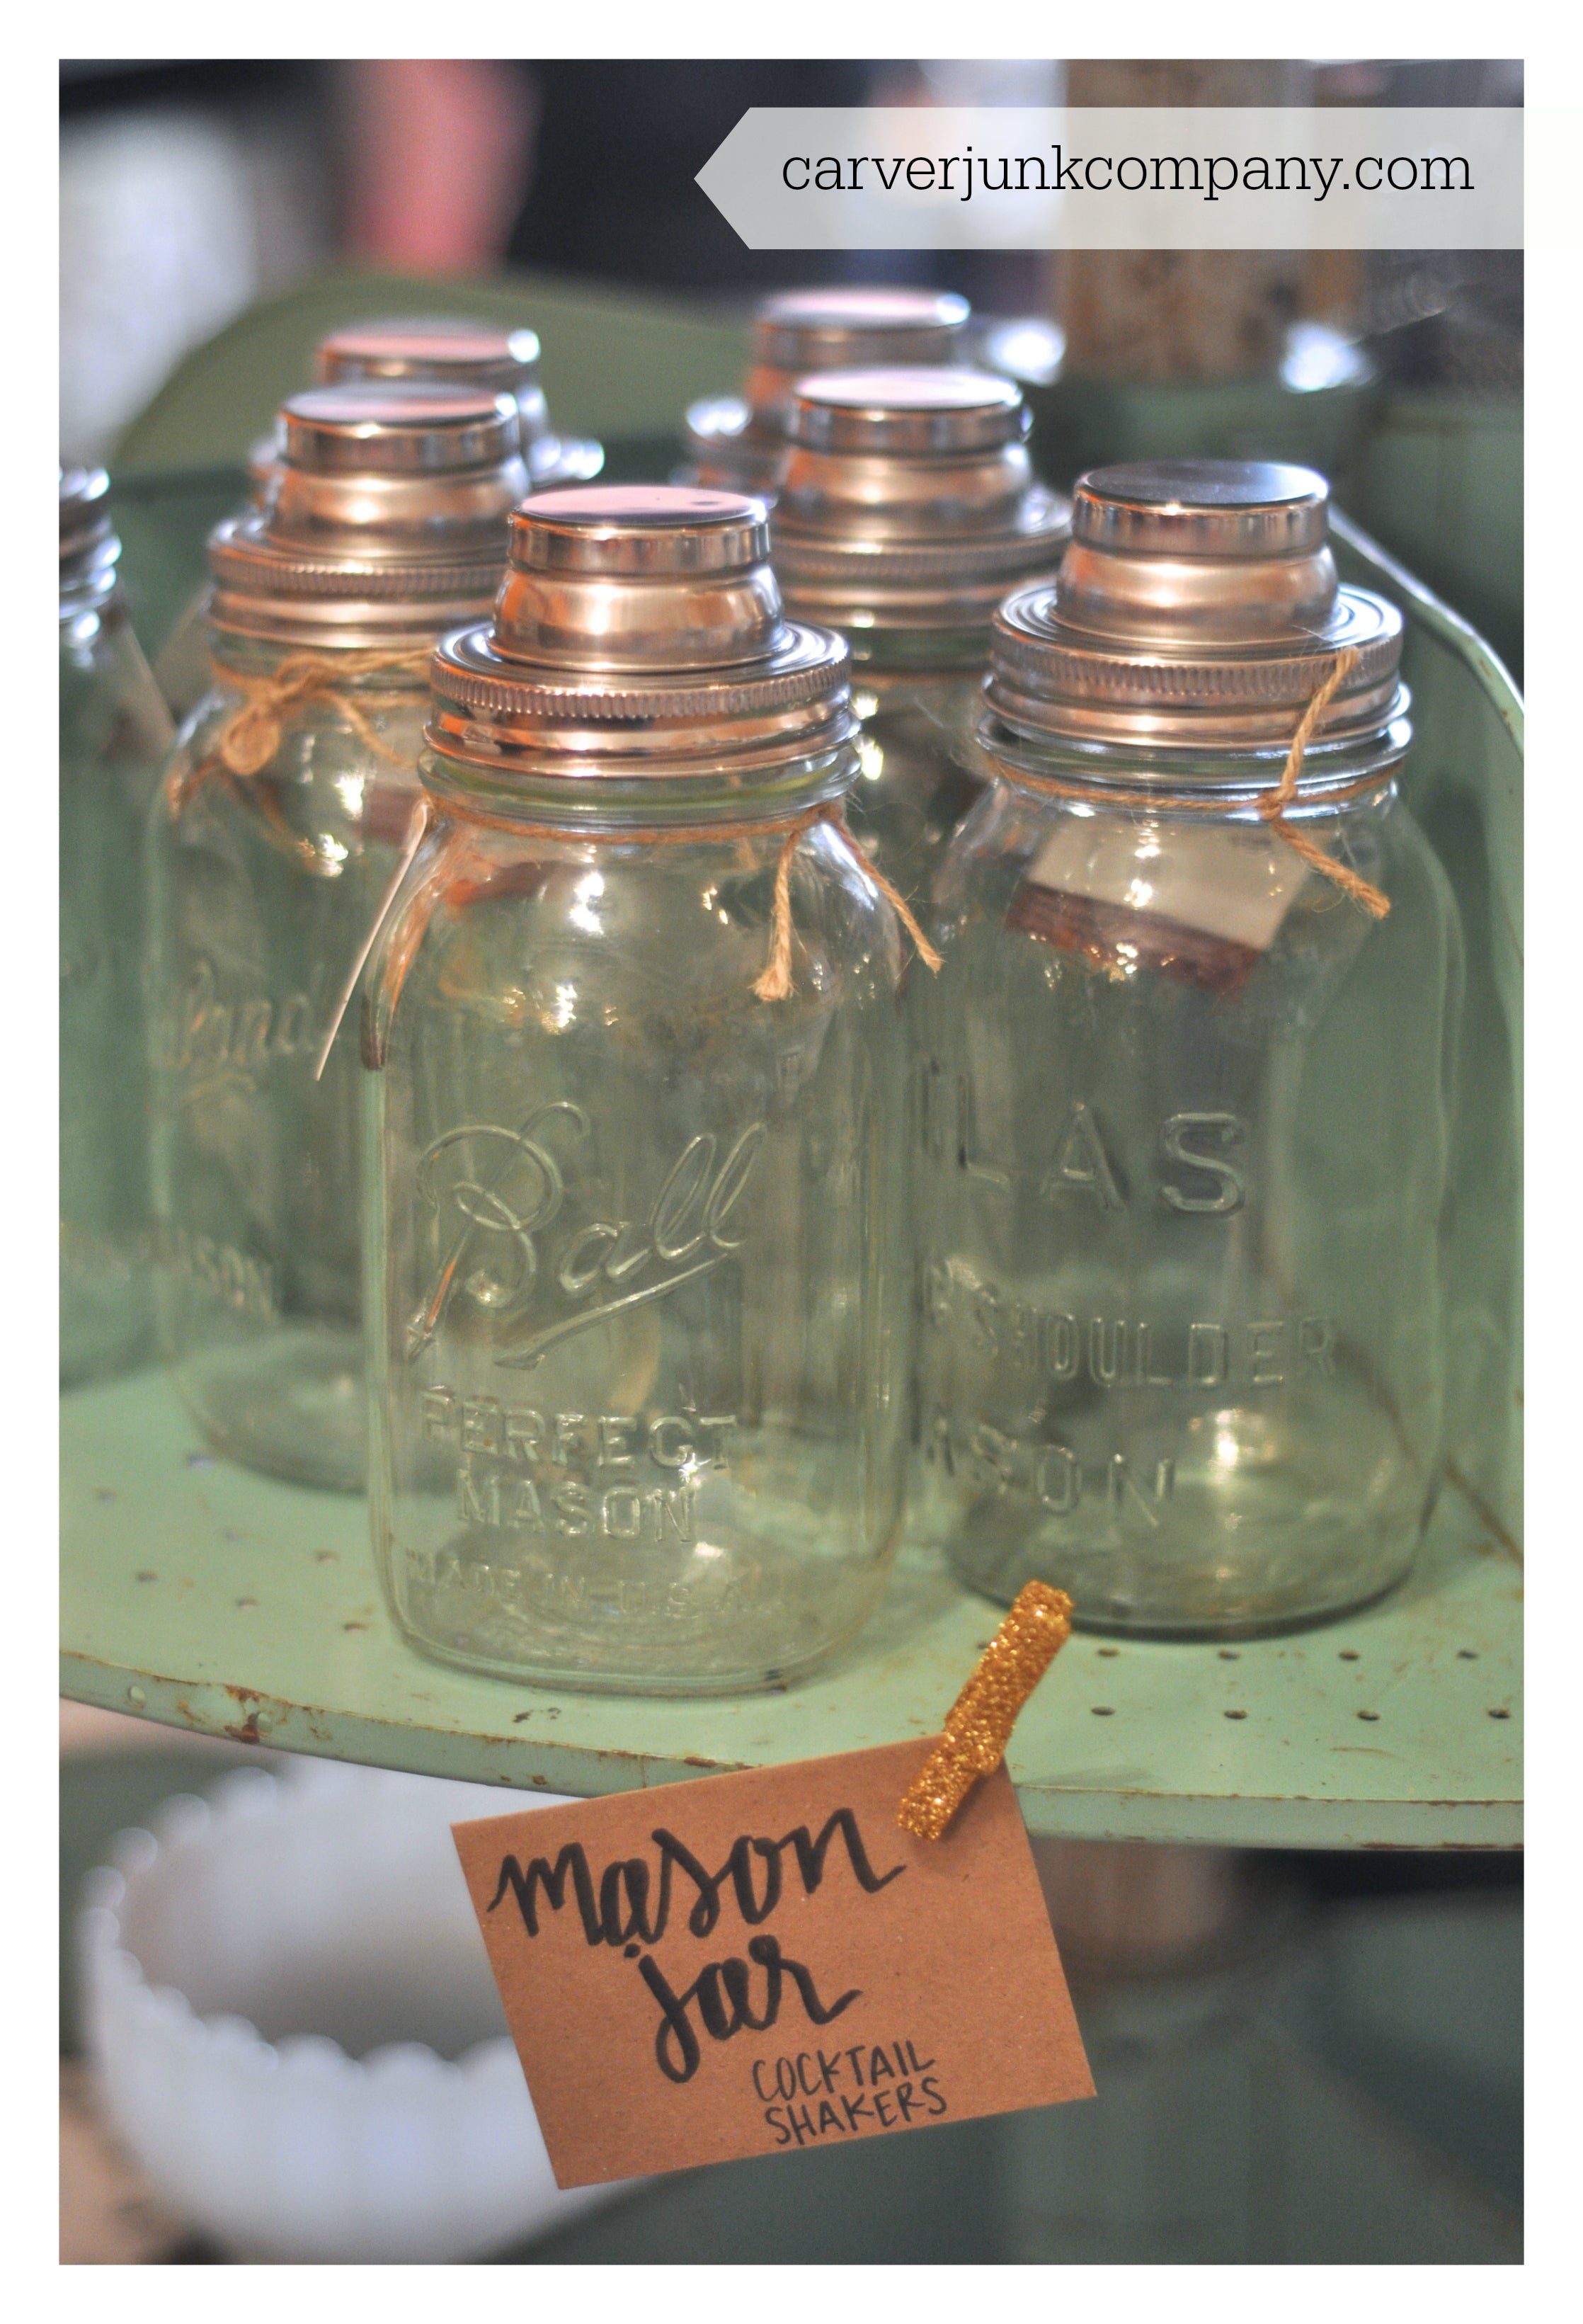 Mason Jar Cocktail Shakers | Antique Jars | Repurposed Drink Dispensers | Carver Junk Company